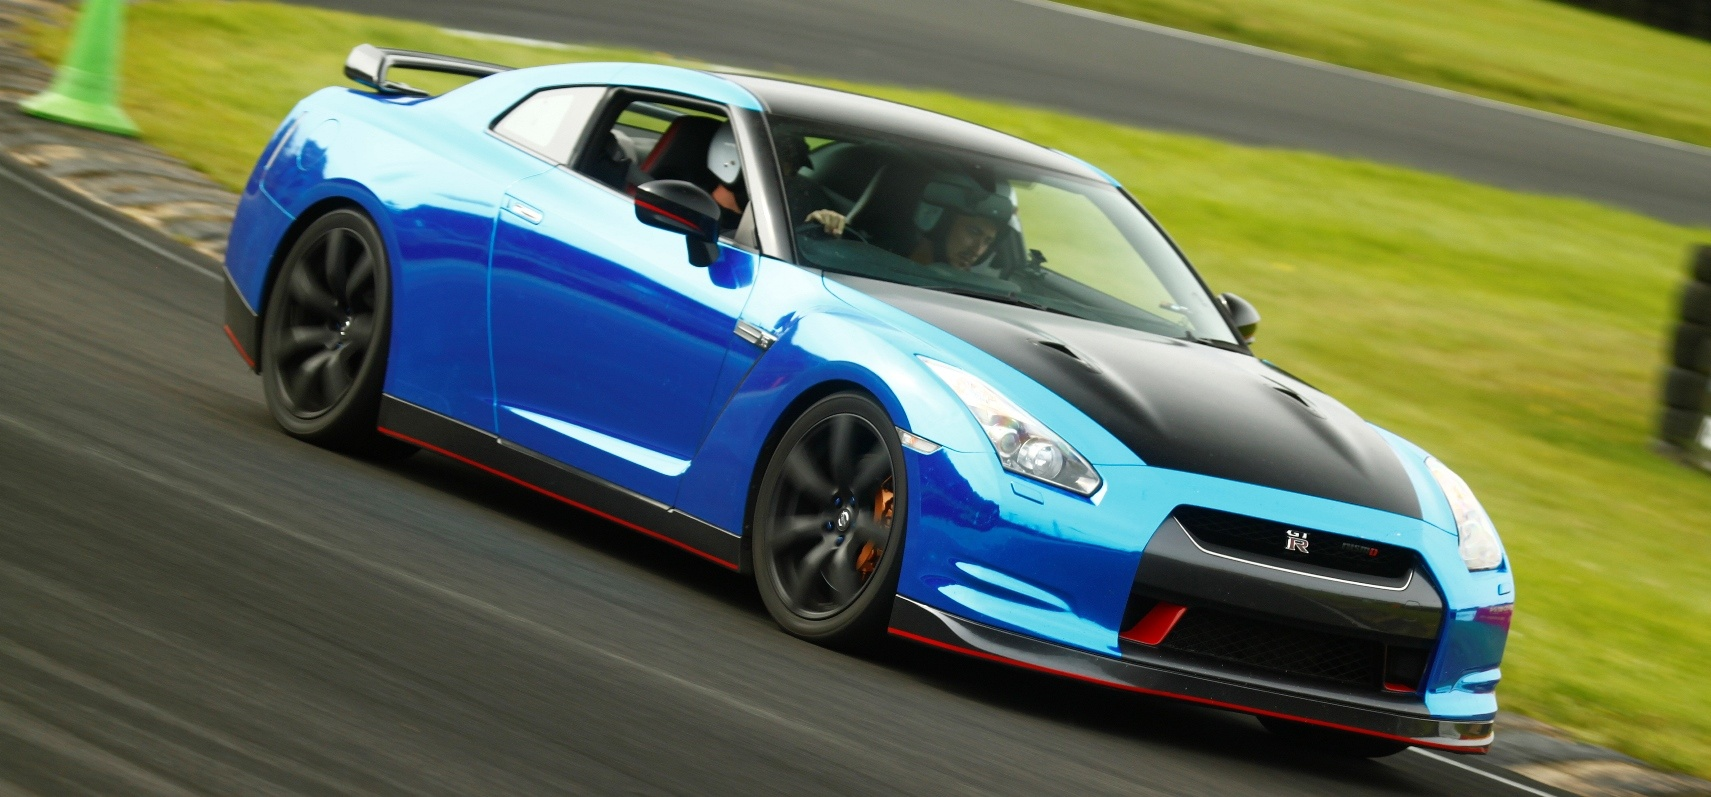 Nissan Gt R Drive A At Various Locations Experience Days Nismo Driving 6 Favorite